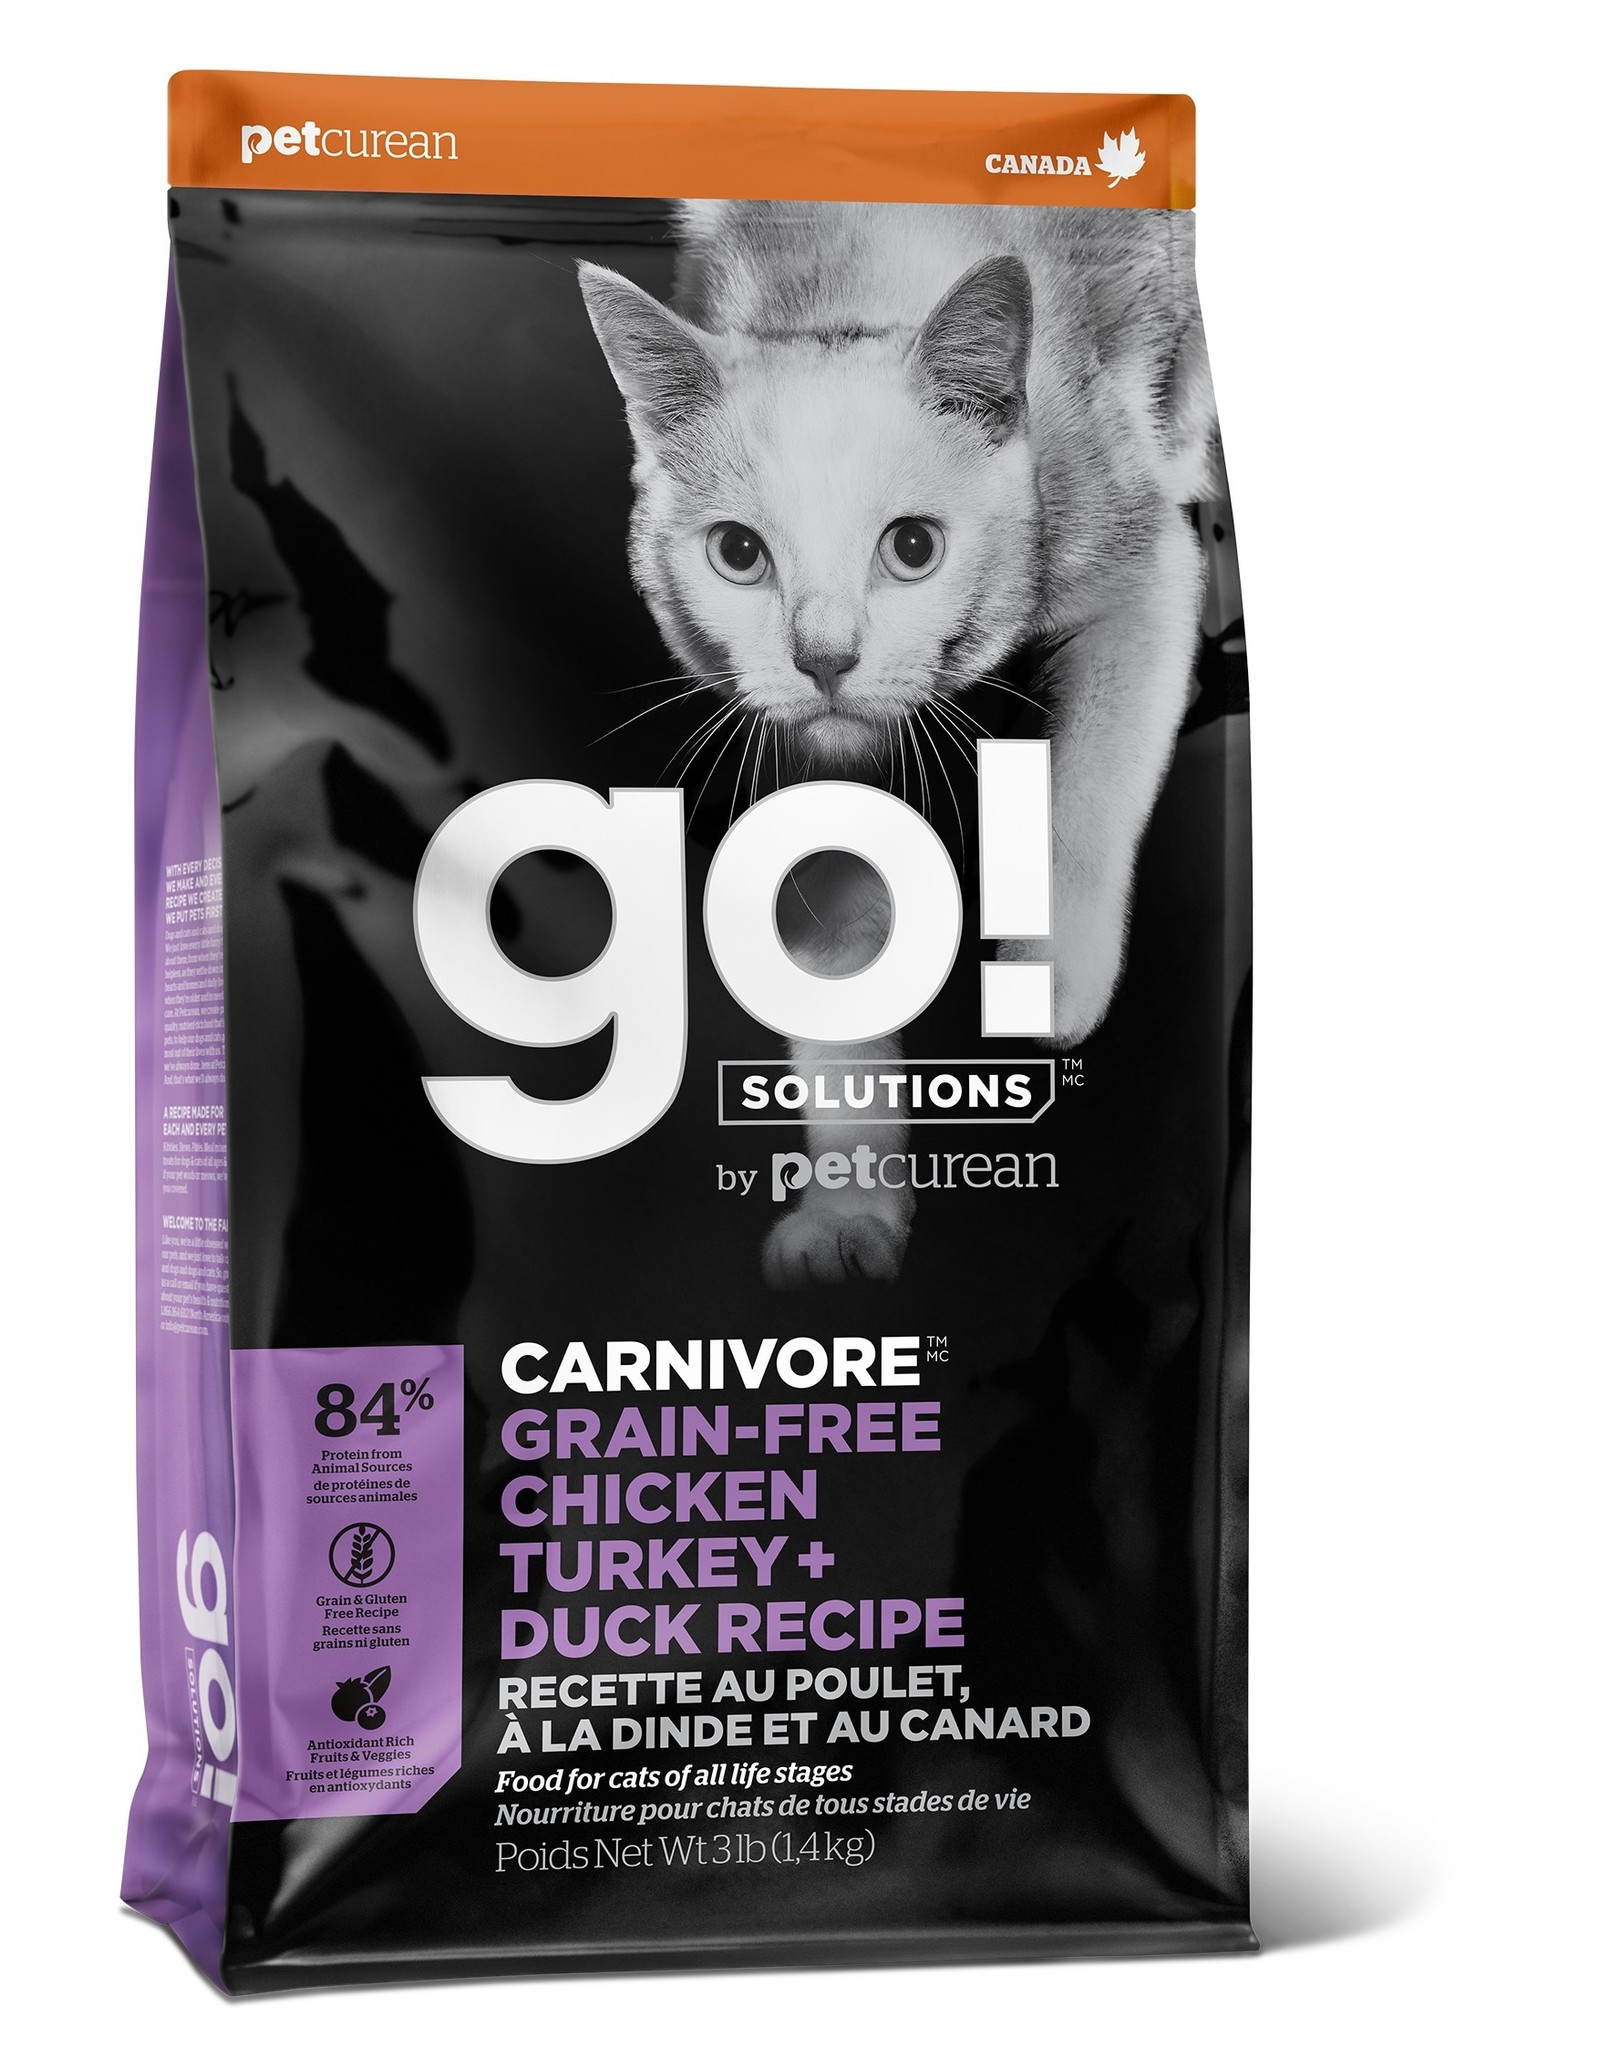 Pet curean PETCUREAN GO! chat carnivore sans grains poulet, dinde + canard 8 lbs